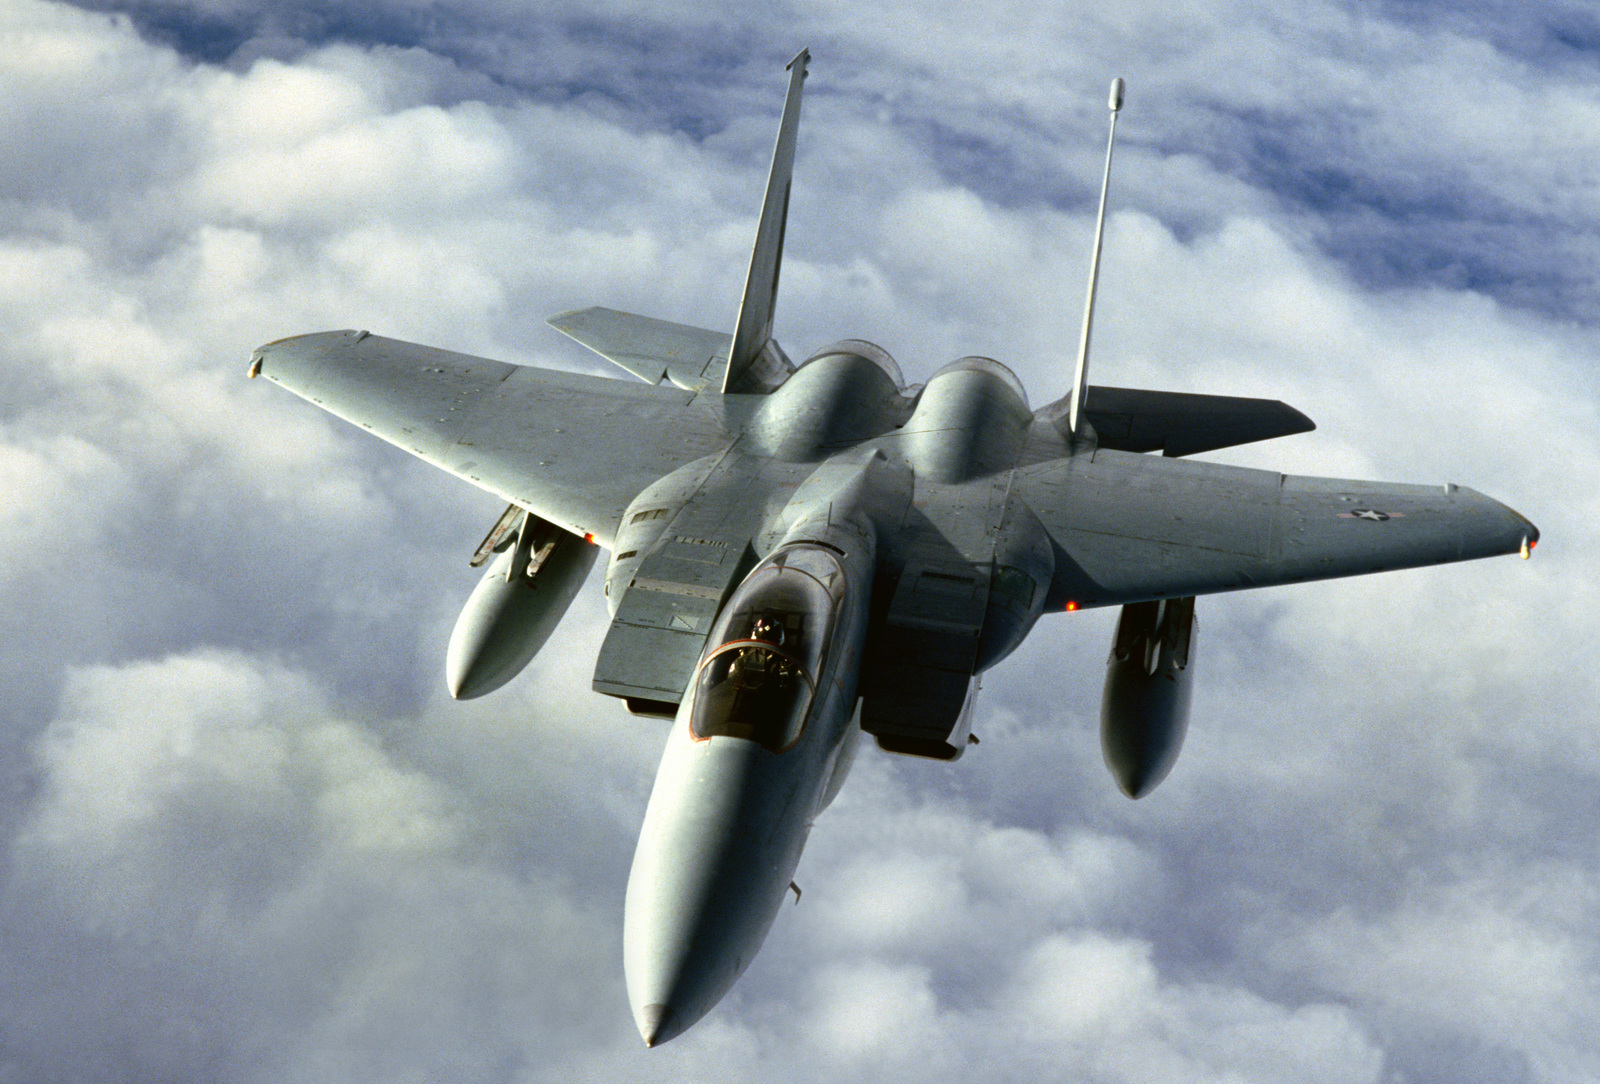 An air-to-air left front view of an F-15 Eagle aircraft en route to